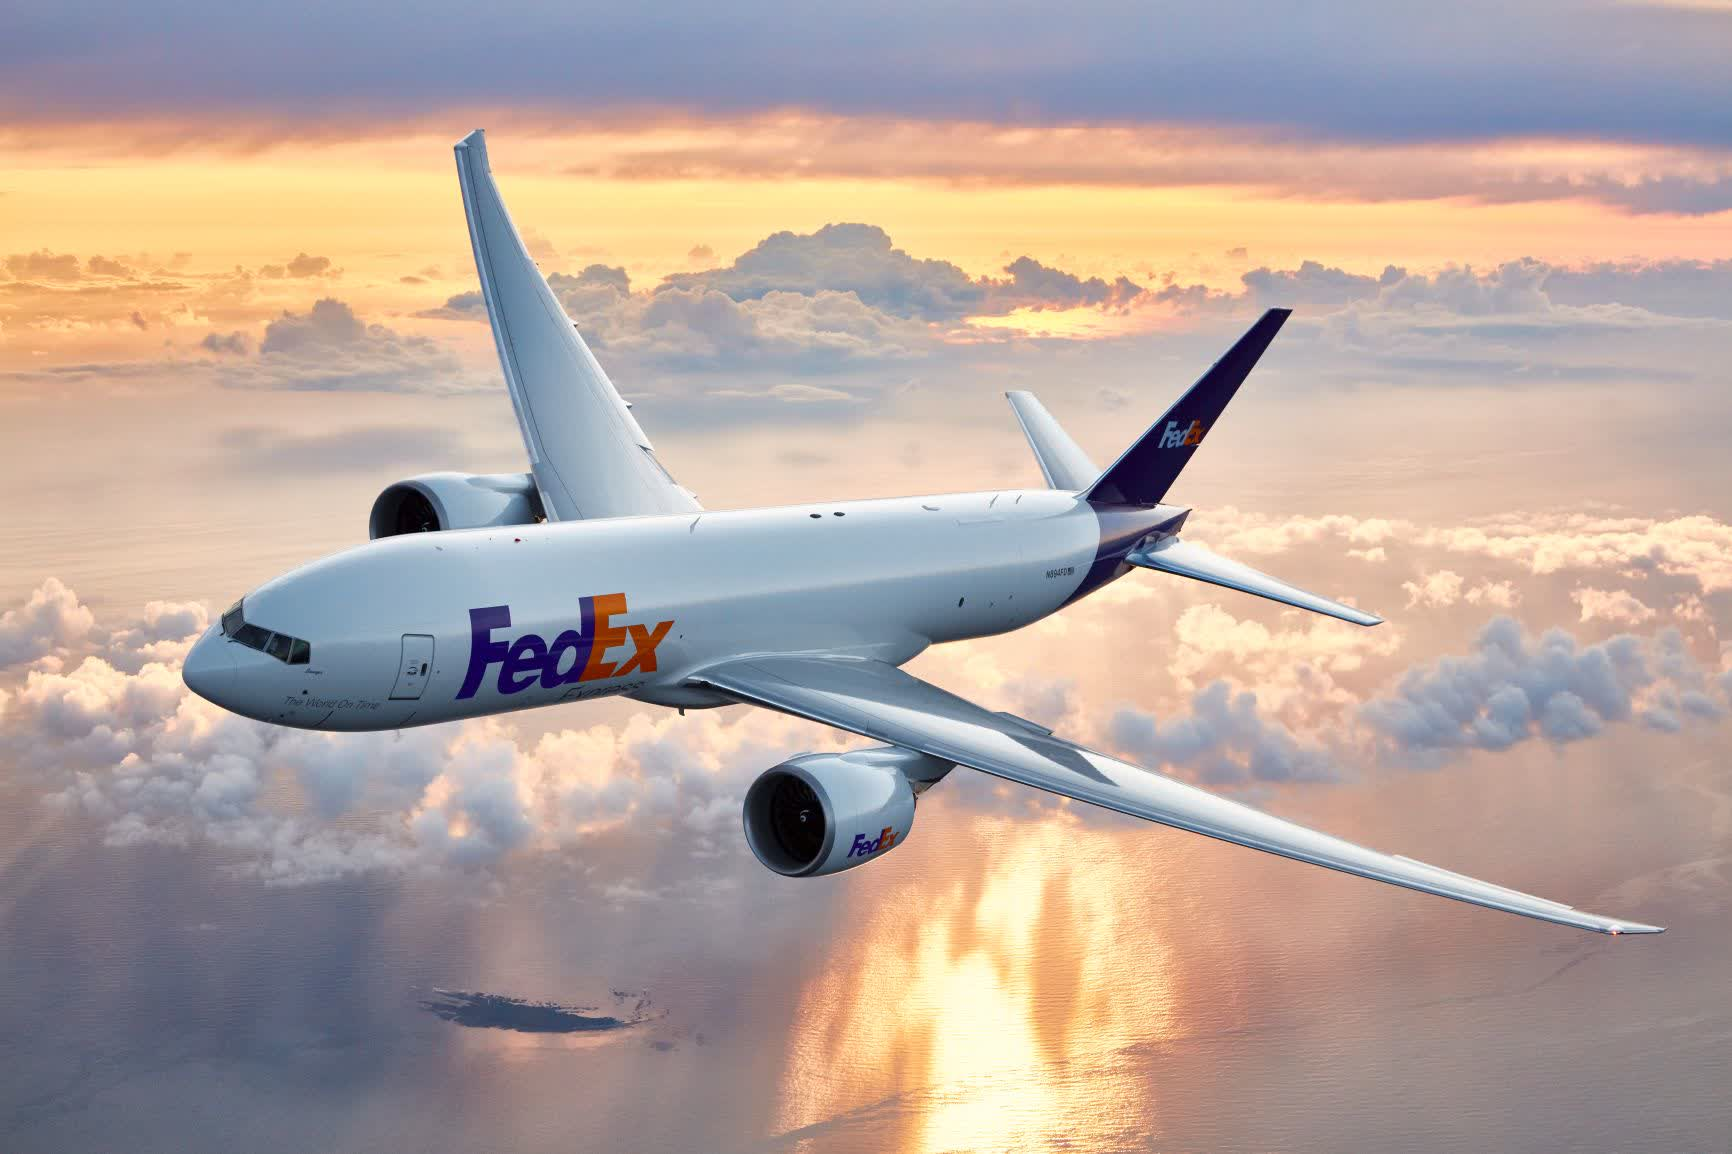 FedEx will invest $2 billion to become fully carbon-neutral by 2040